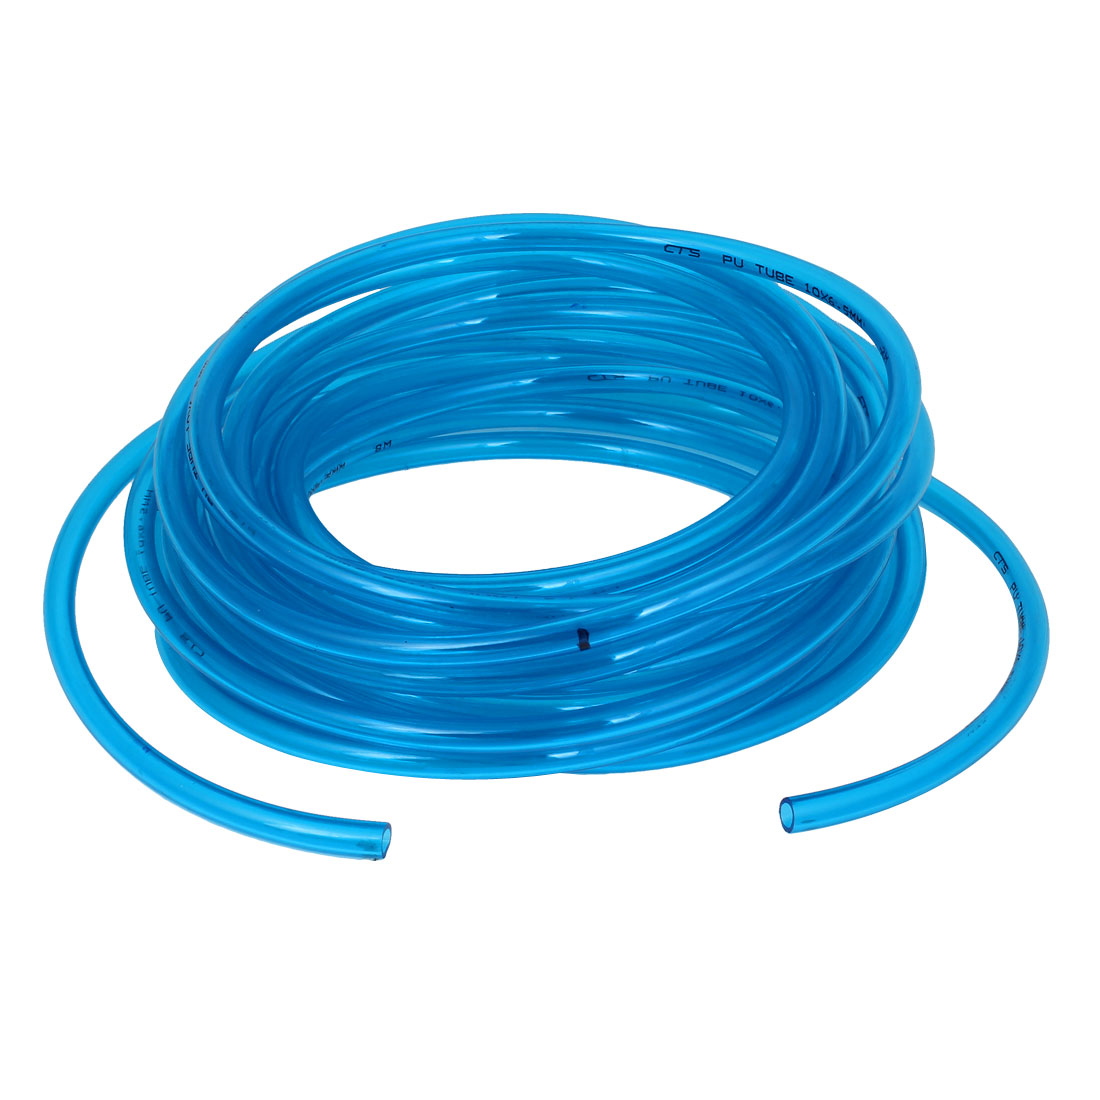 Pneumatic Air Polyurethane Flexible PU Tube Pipe 10mmx6.5mm 12Meter Clear Blue